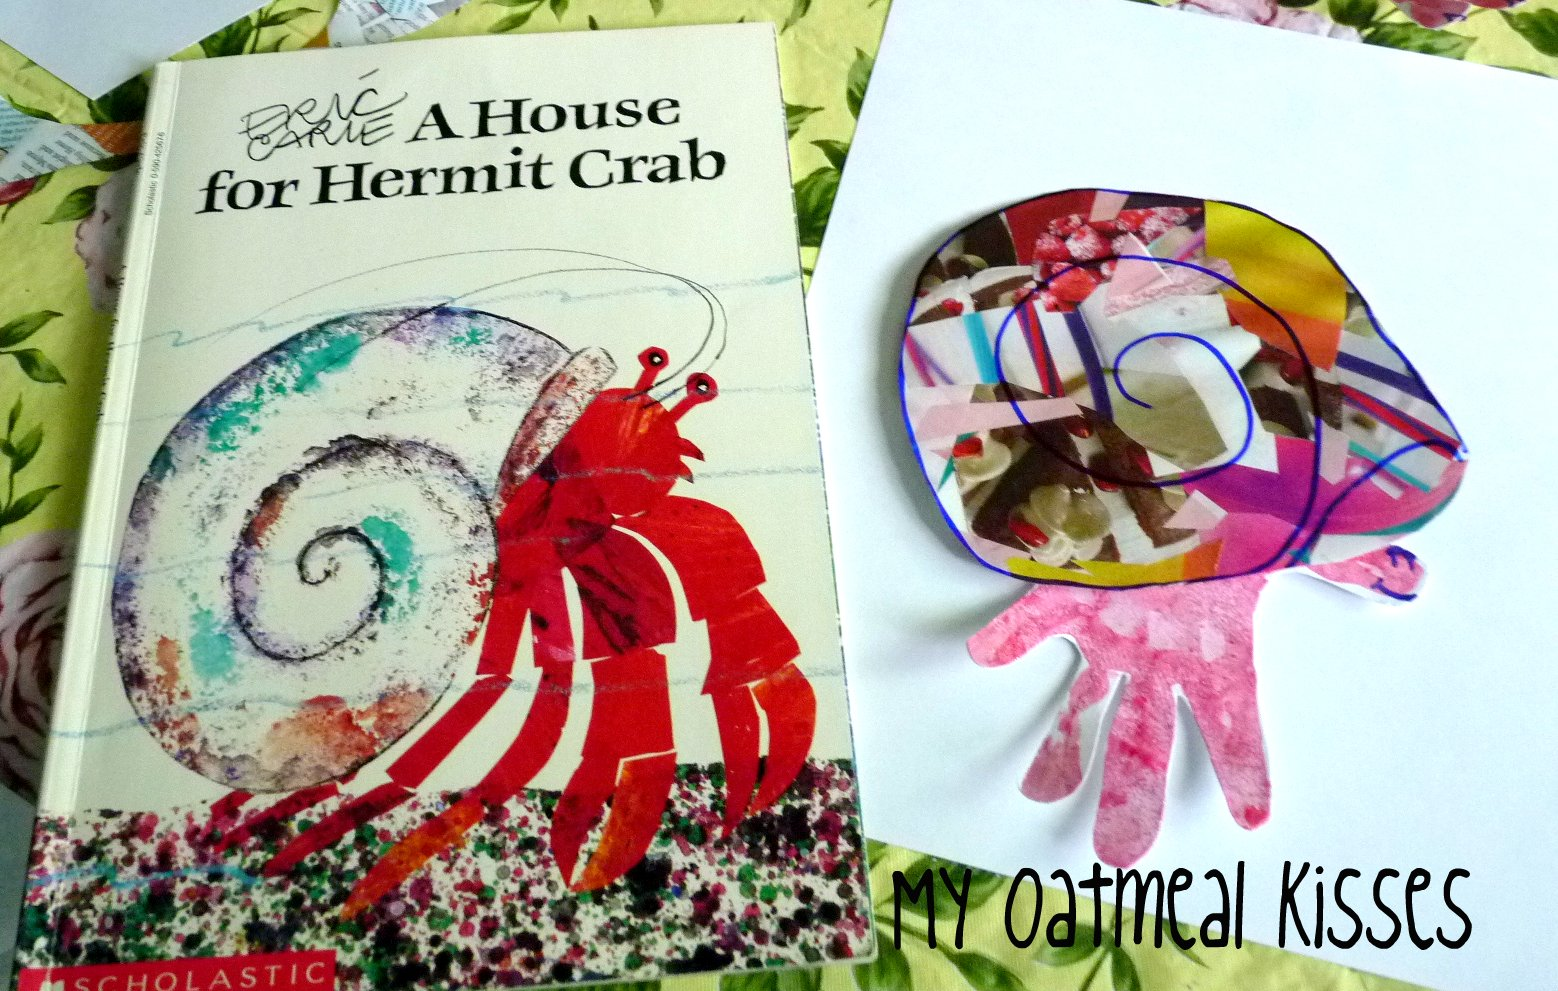 My Oatmeal Kisses A Home For Hermit Crab